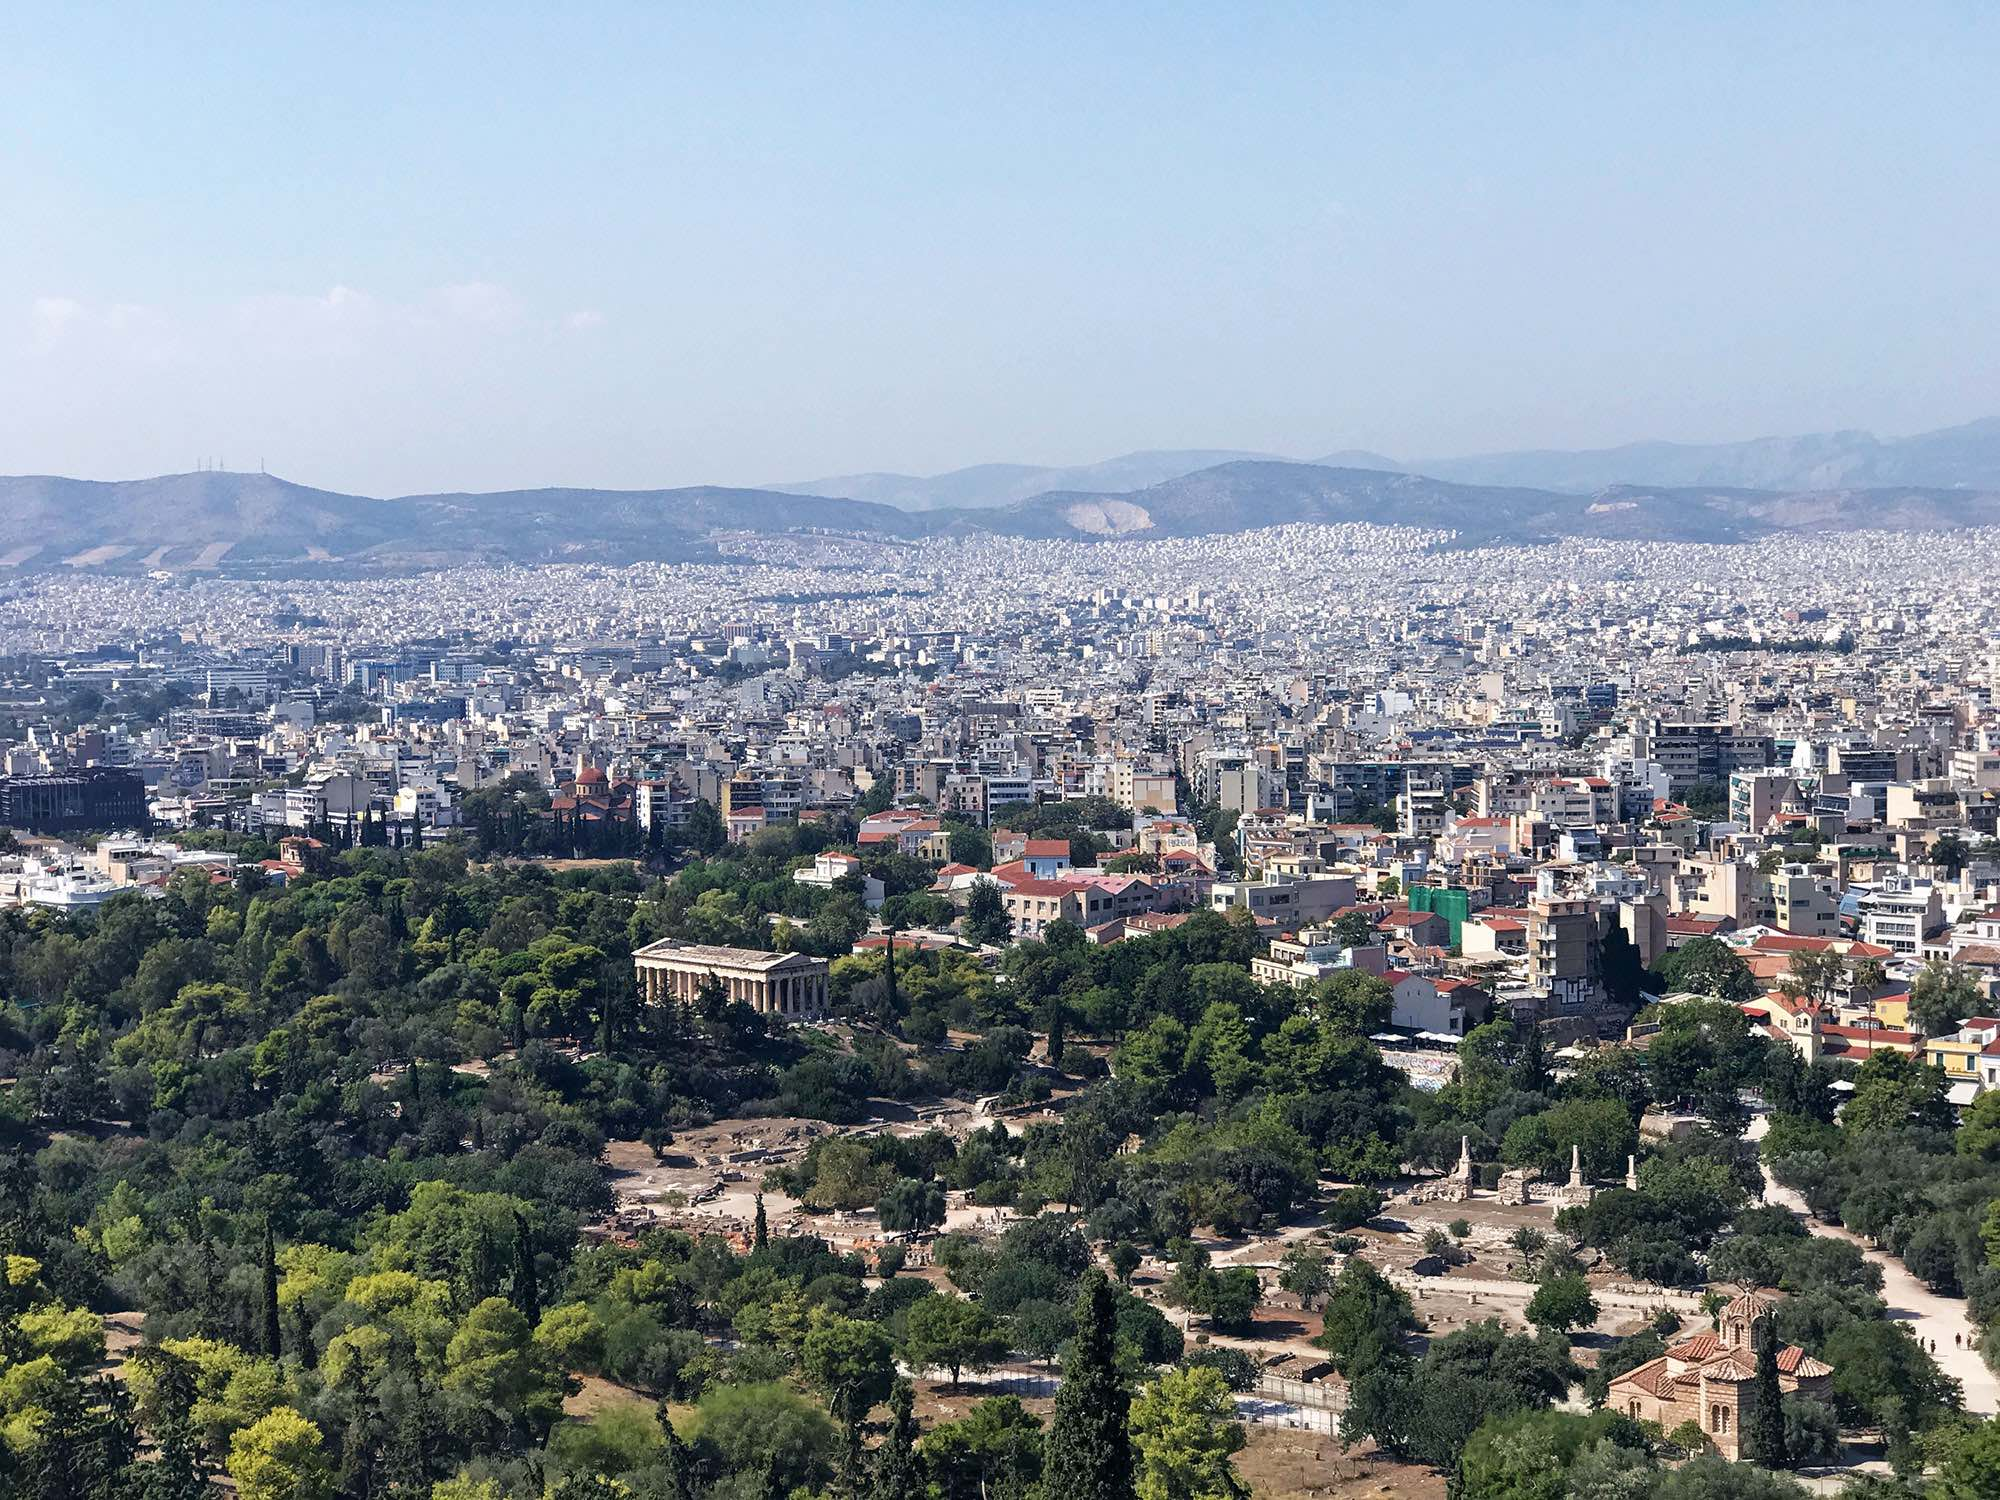 Views of Athens, Greece from the Acropolis